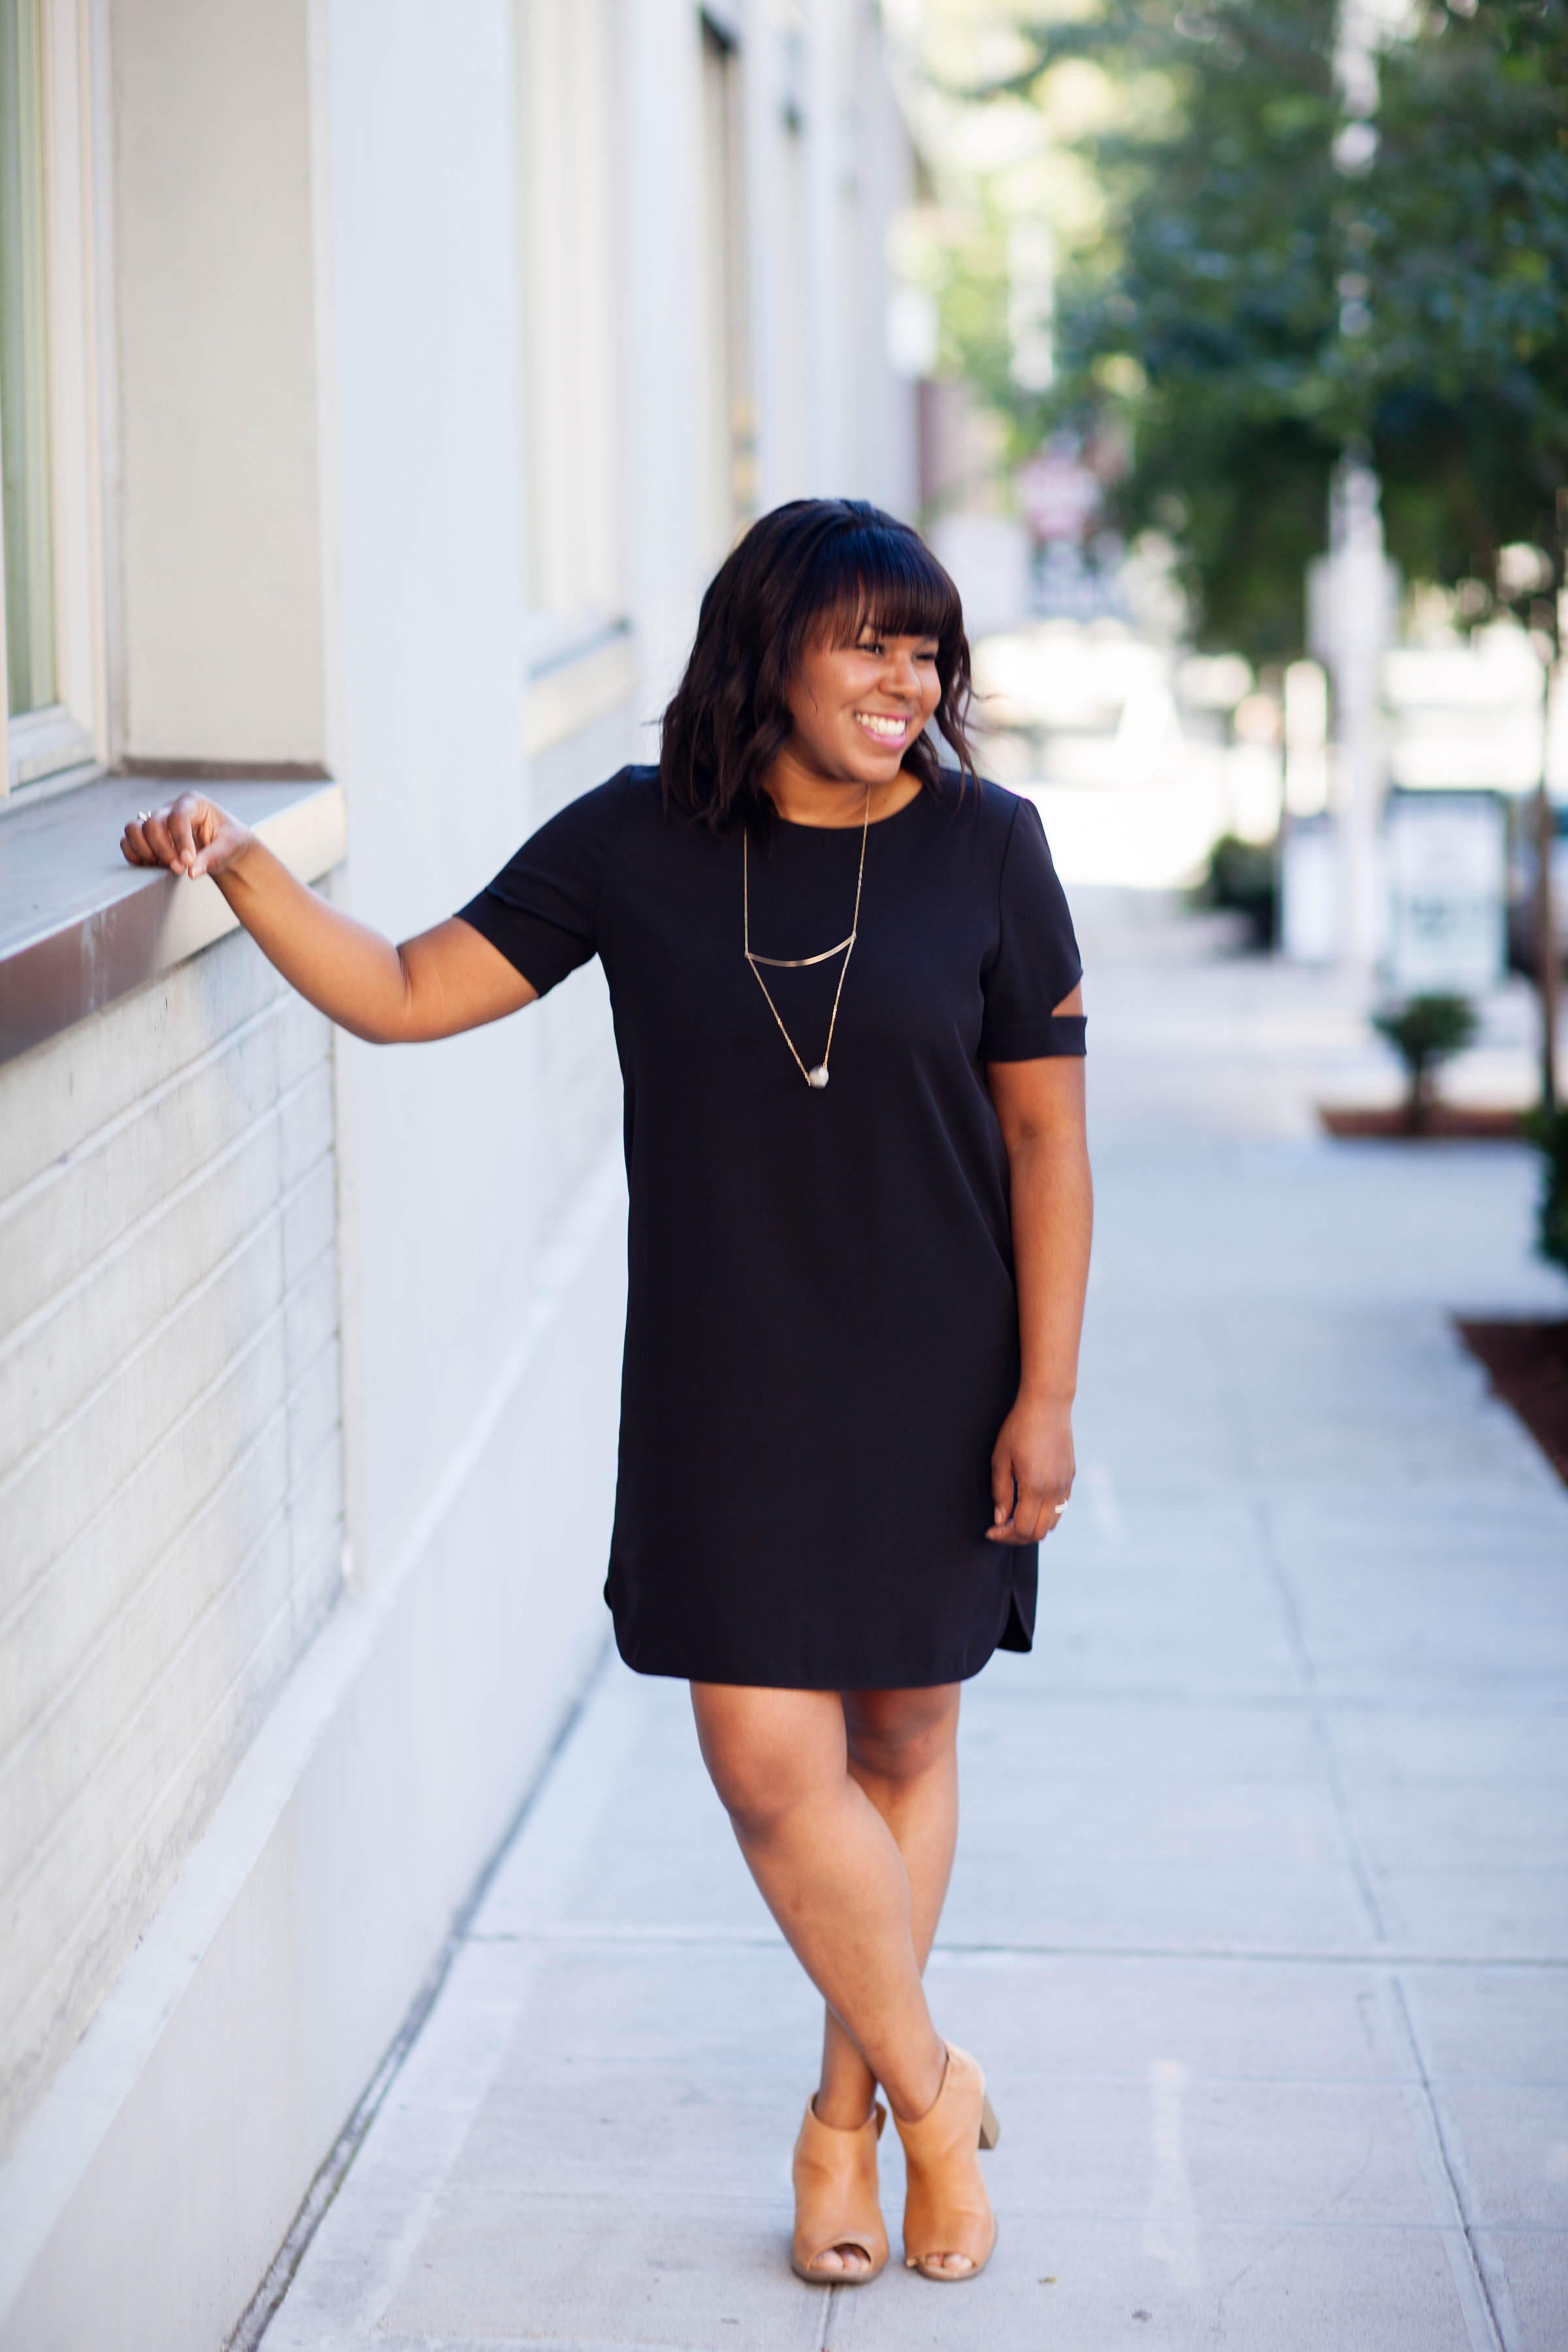 I am excited to share this new (at least to me) brand Tobi. They have so many cute styles and I love their dresses. Decent quality too.